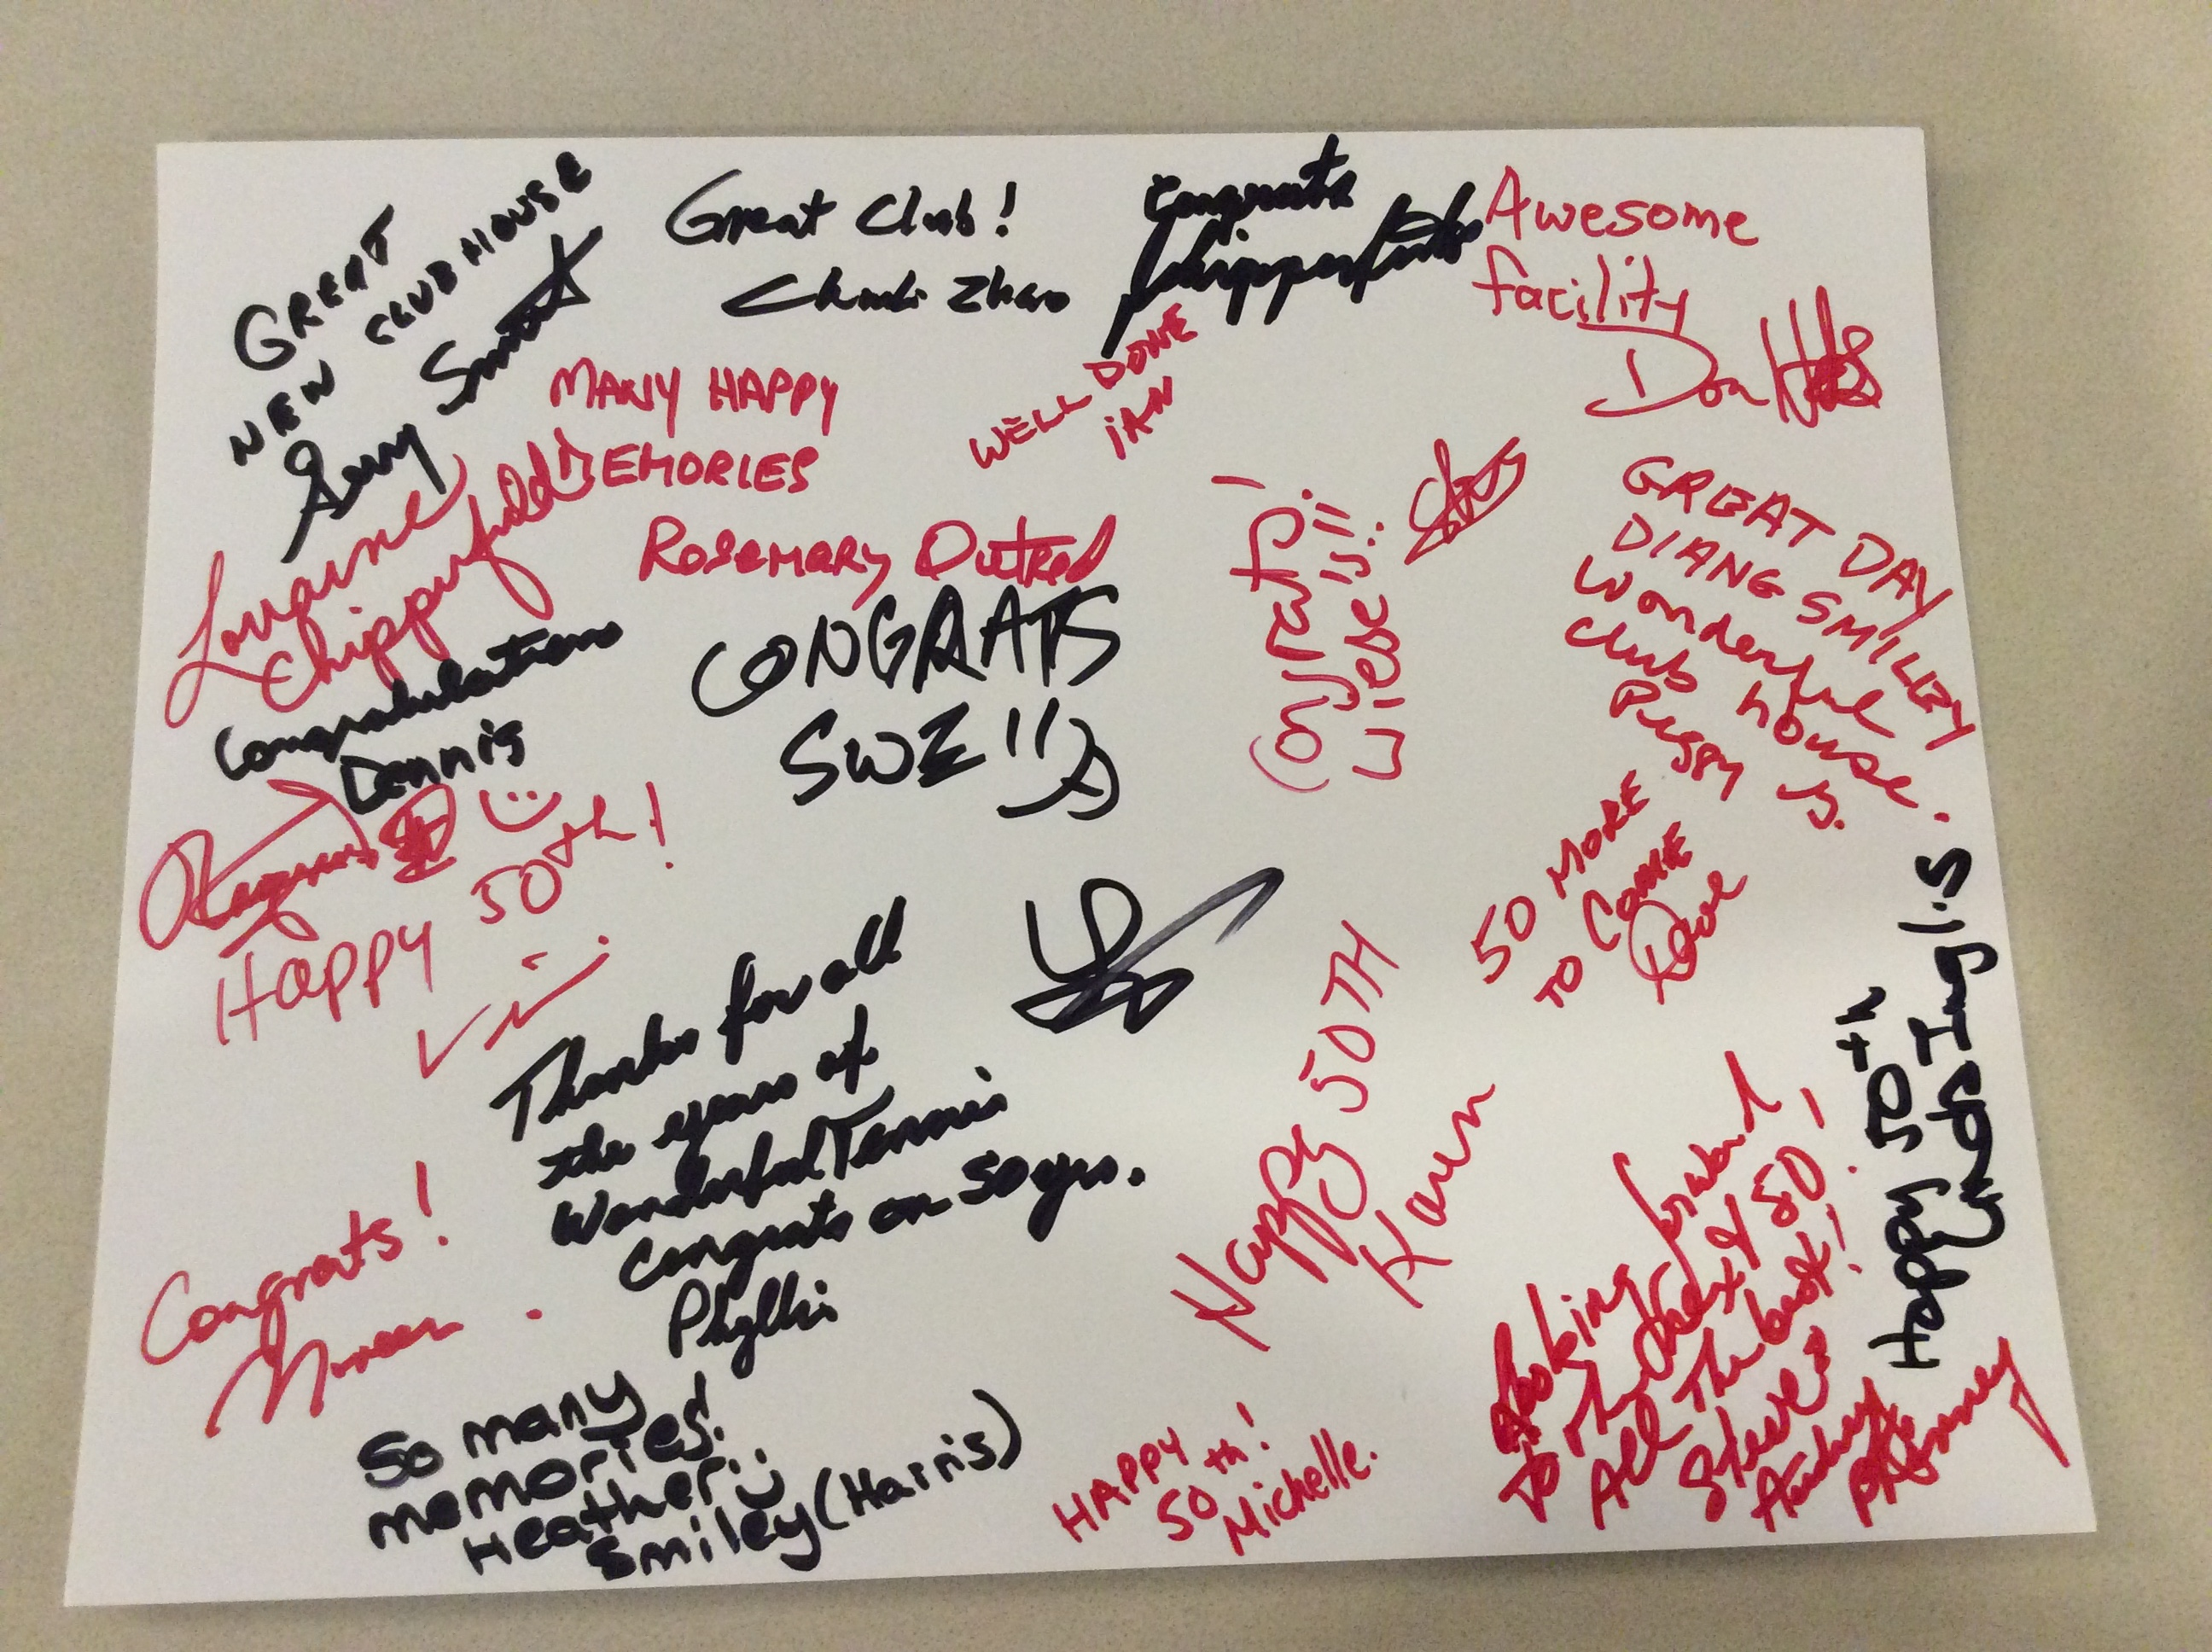 Signatures from well wishers